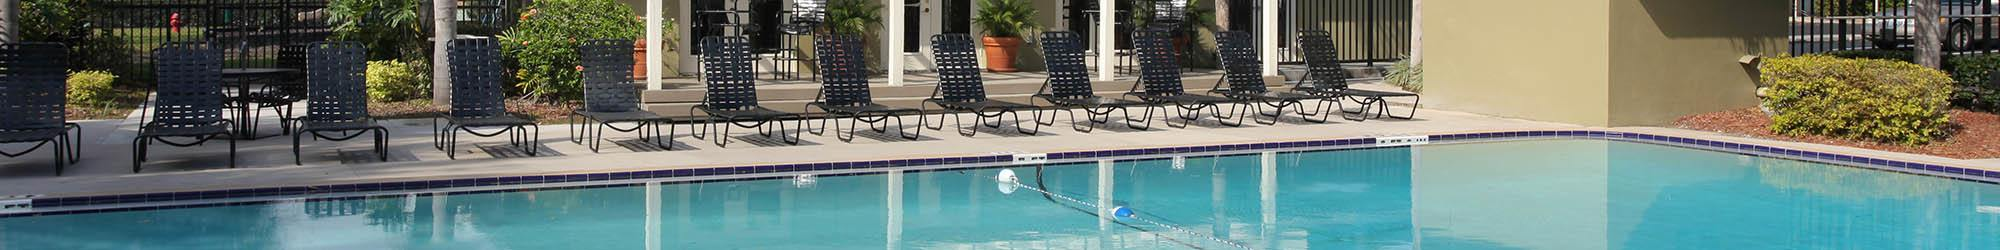 Contact Briarcrest at Winter Haven for information about our apartments in Winter Haven